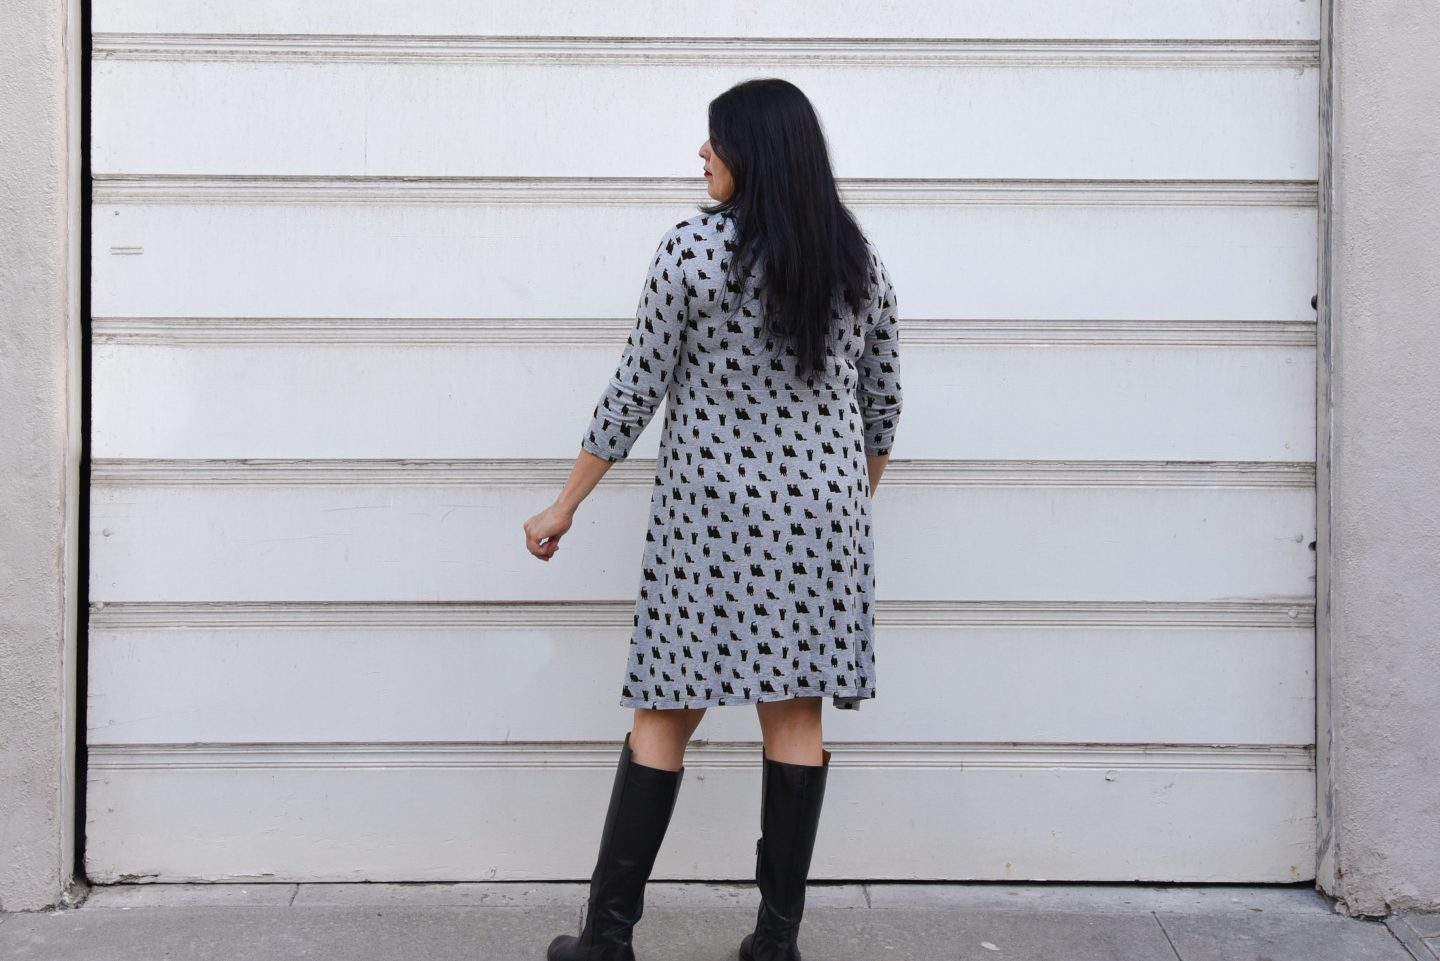 Image of a woman with long black hair and red lipstick with her back to the camera wearing a black and gray knit empire-waist dress with black kitty print standing in front of a white garage door.